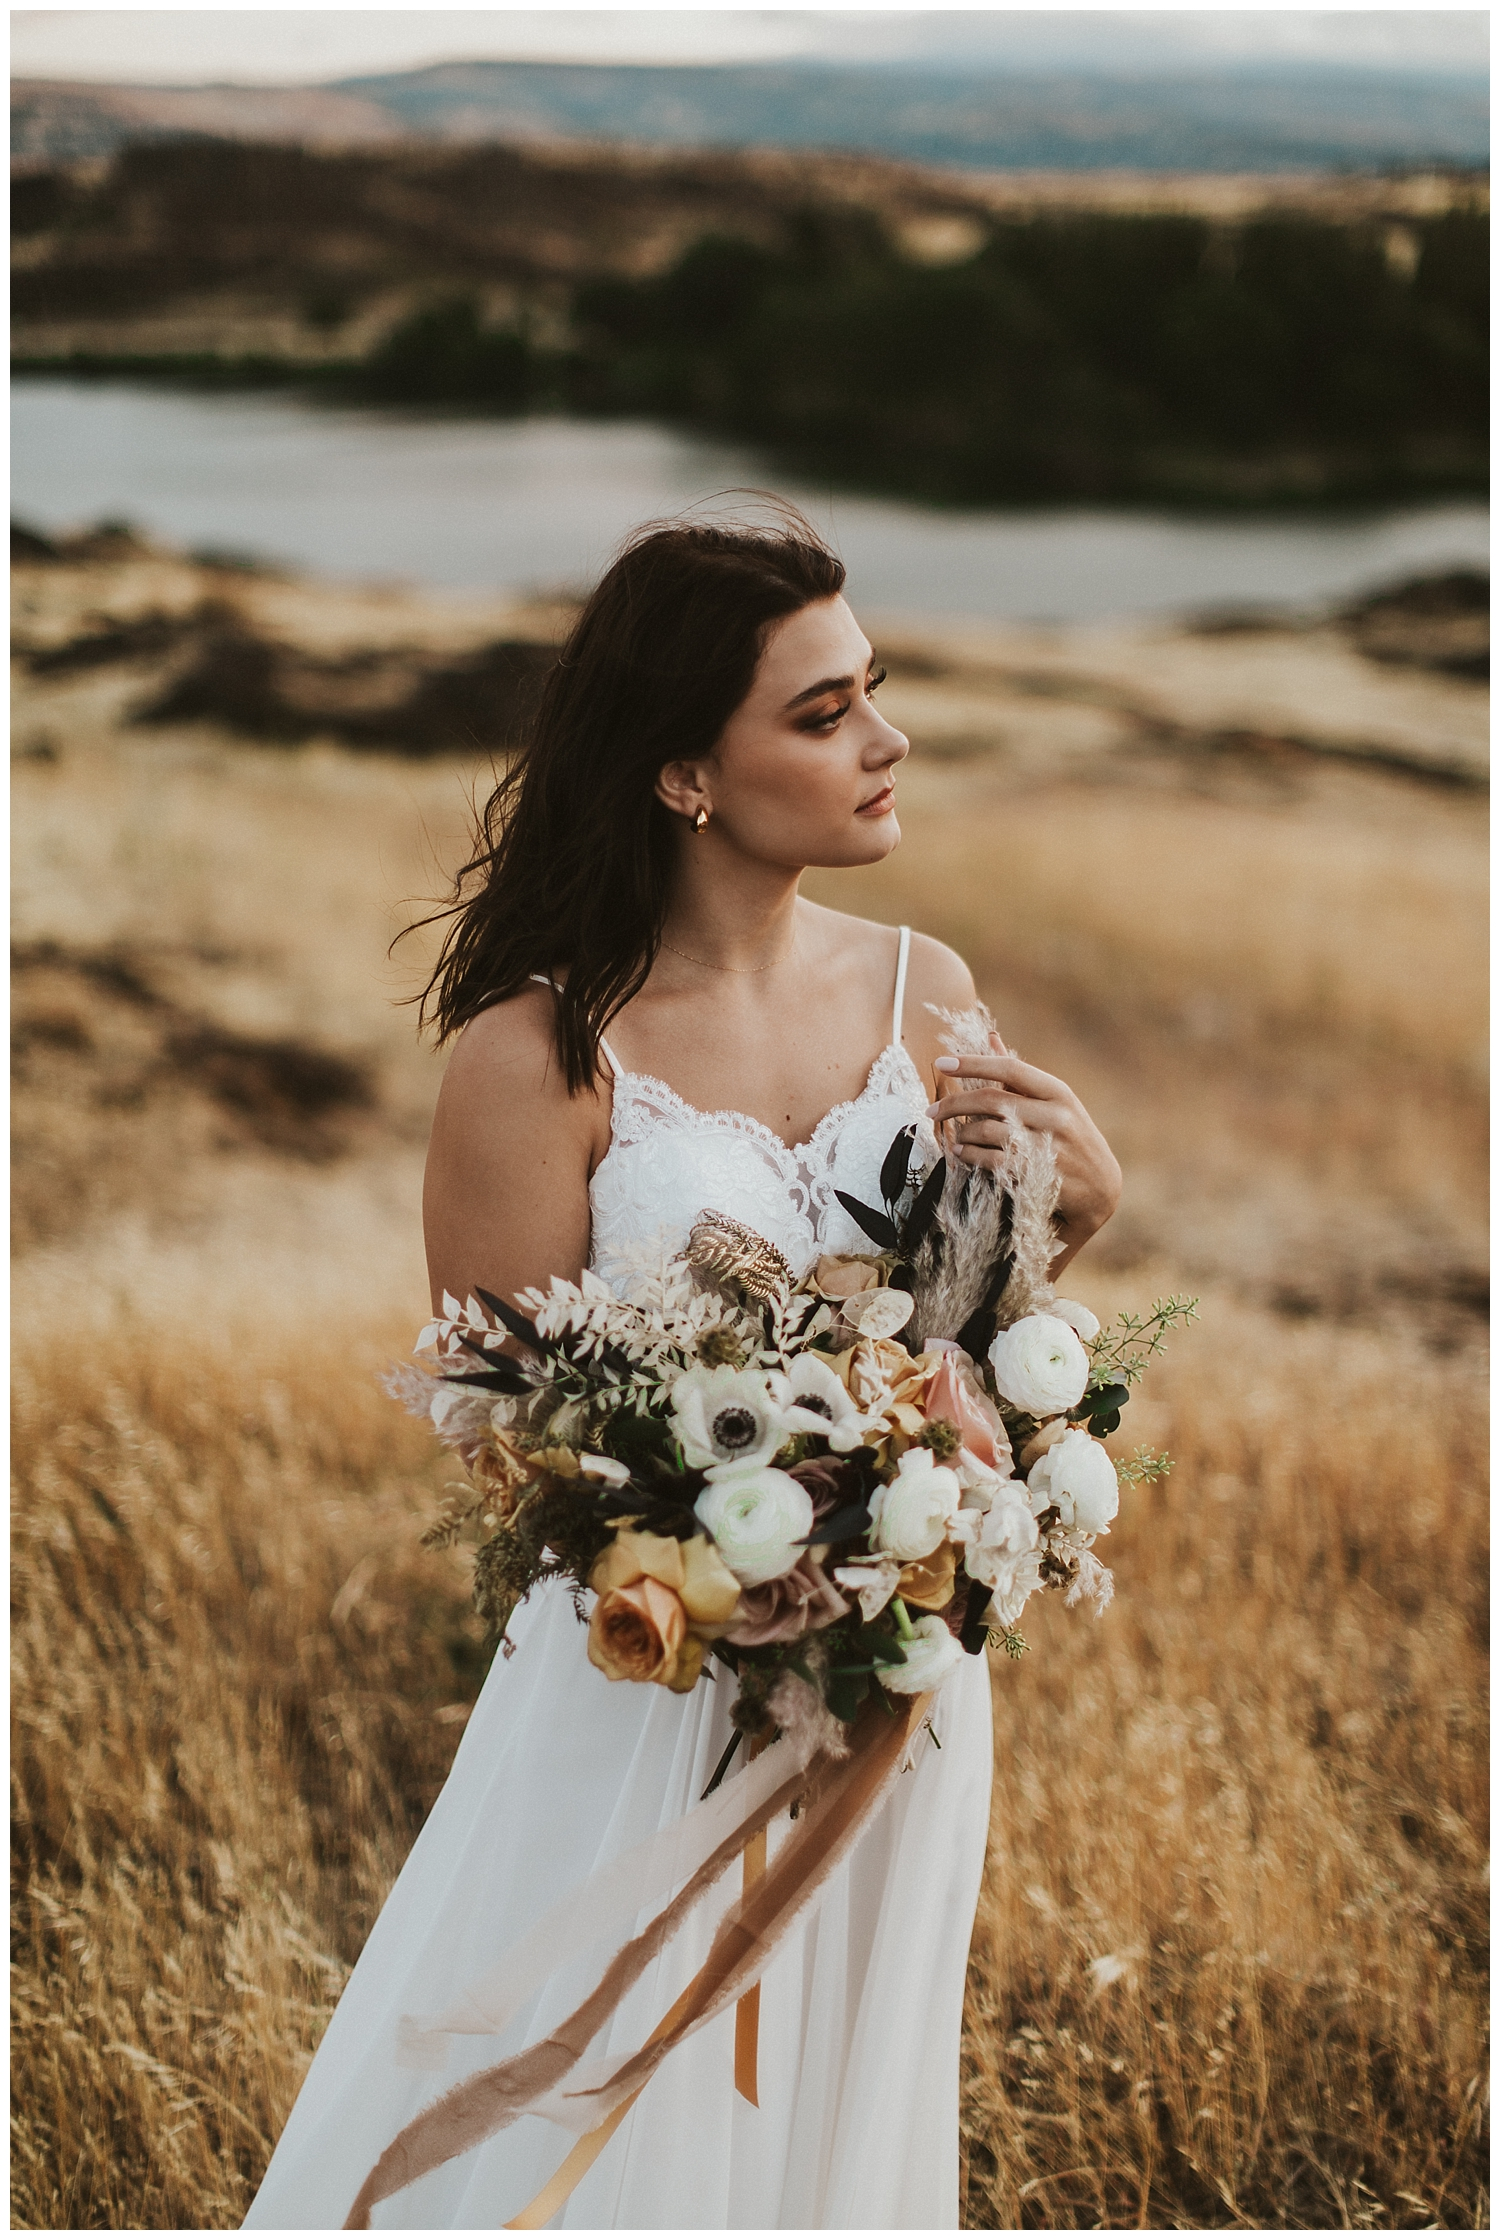 a bride in a flowing white gown holds a large bouquet and looks off into the distance